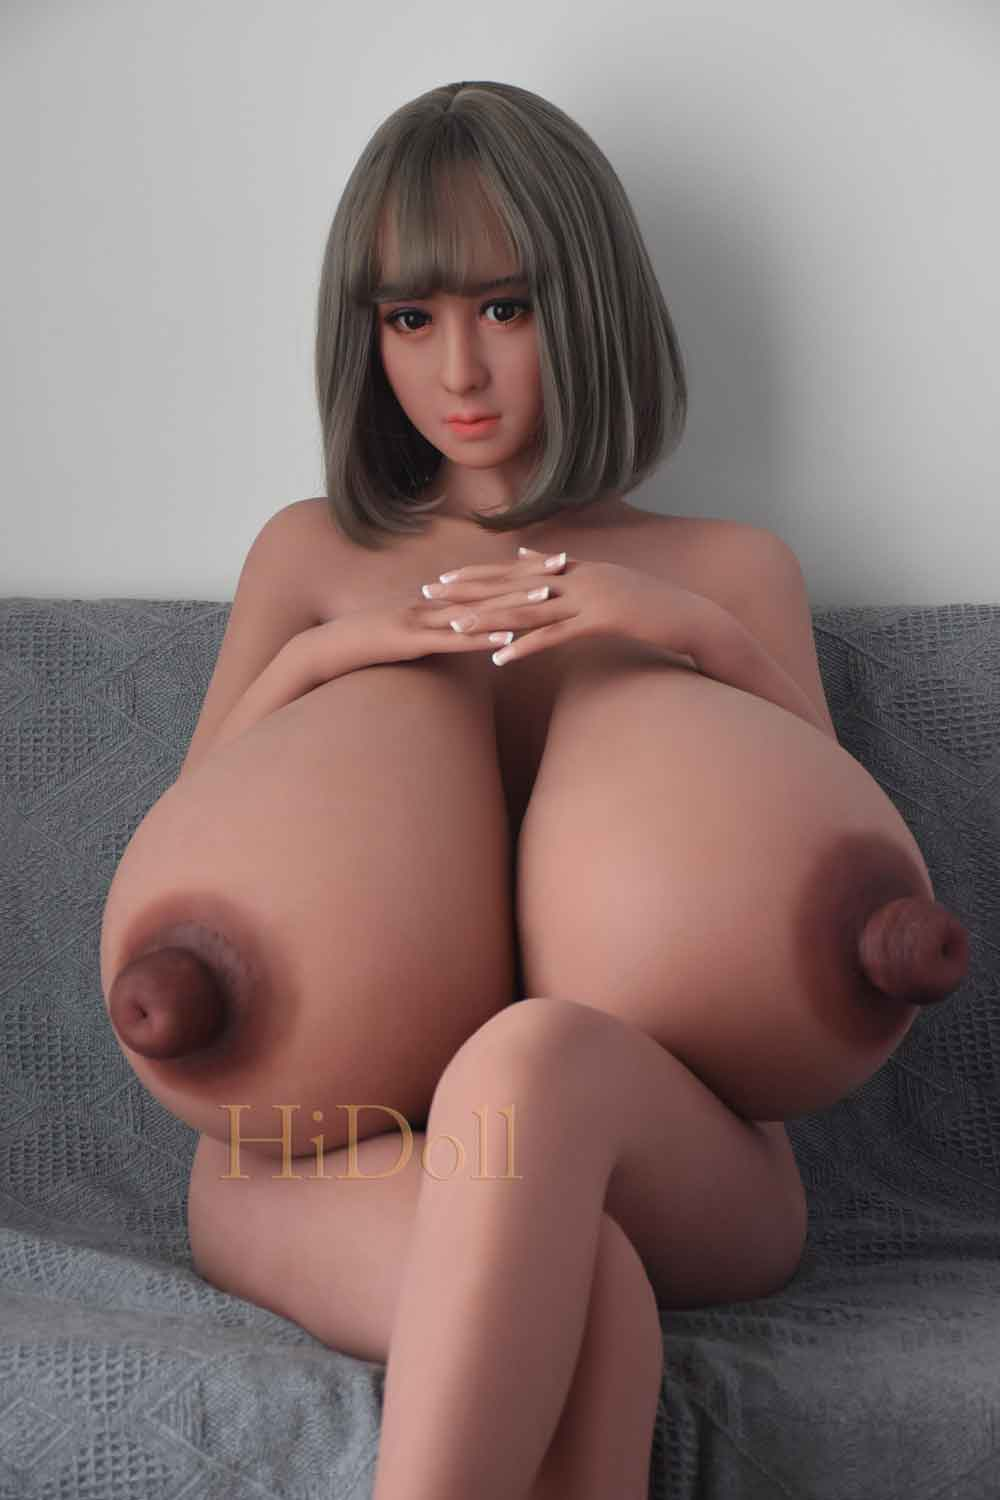 160Cm5Ft3 Super Huge Boobs Titty Fuck Doll-Hidoll -1799